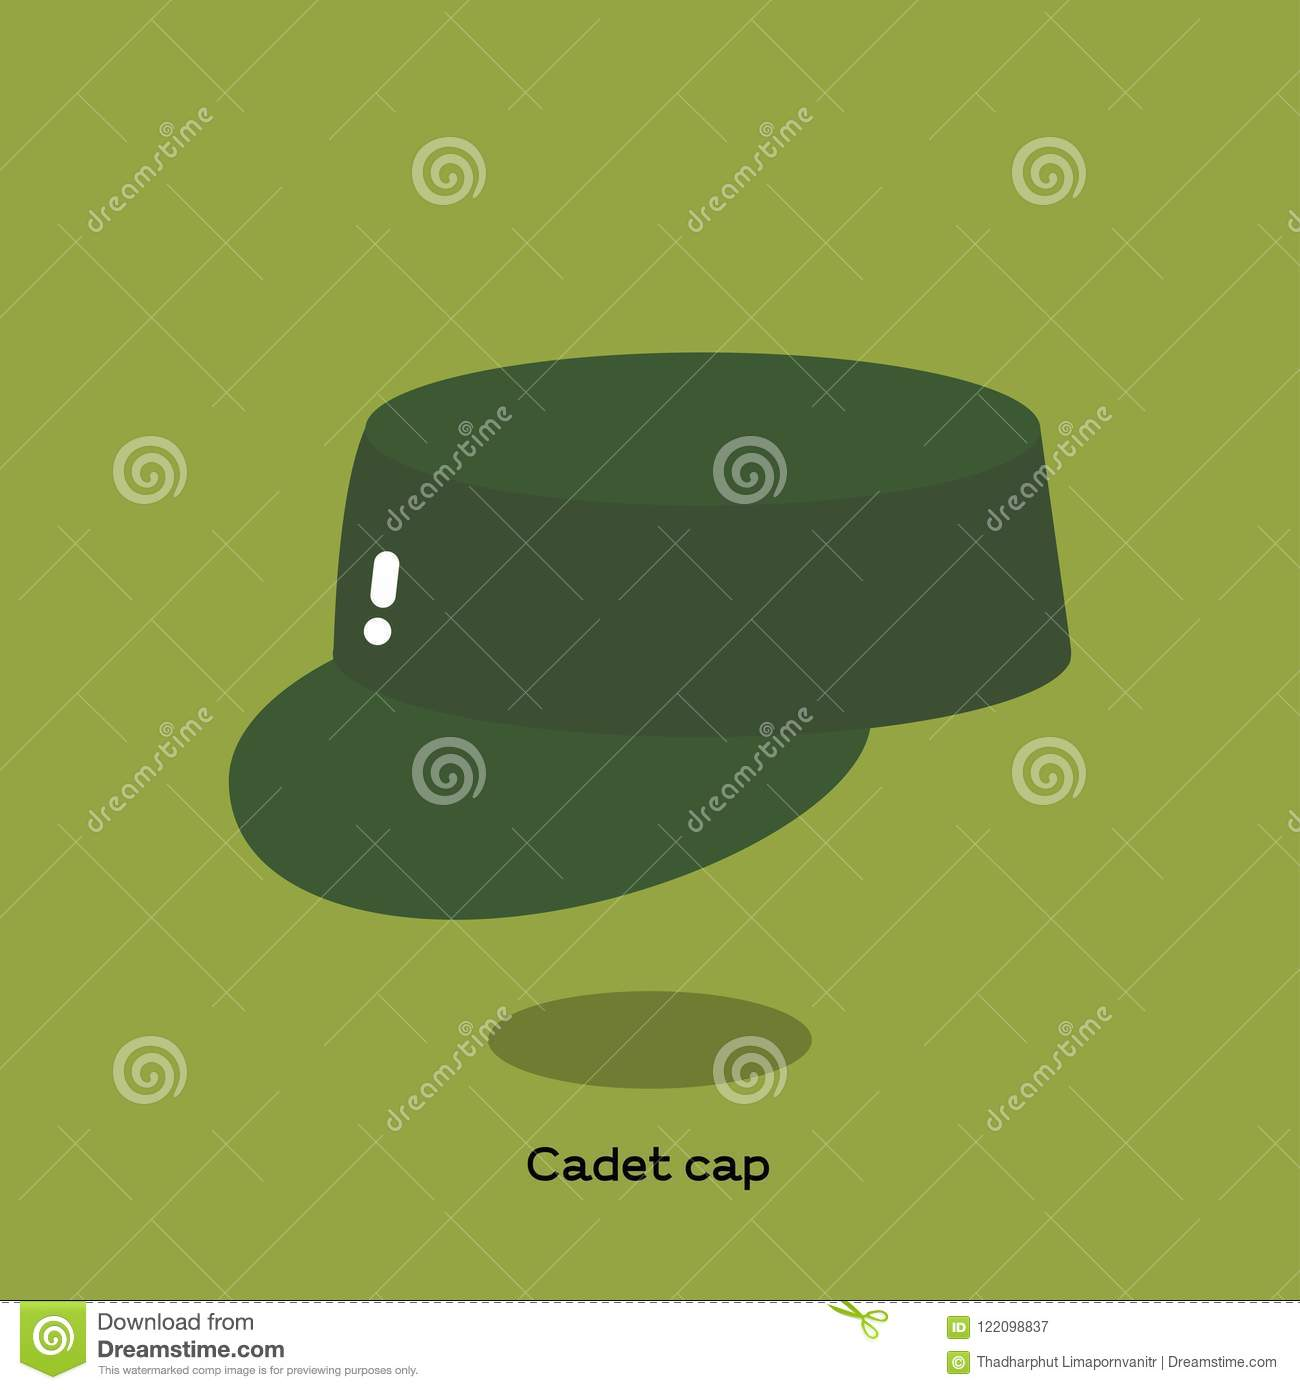 3e5db845e1a949 Green olive canvas cadet cap on light green background. It is a soft kepi  with flat top, round visor and it is also called patrol cap or field cap.